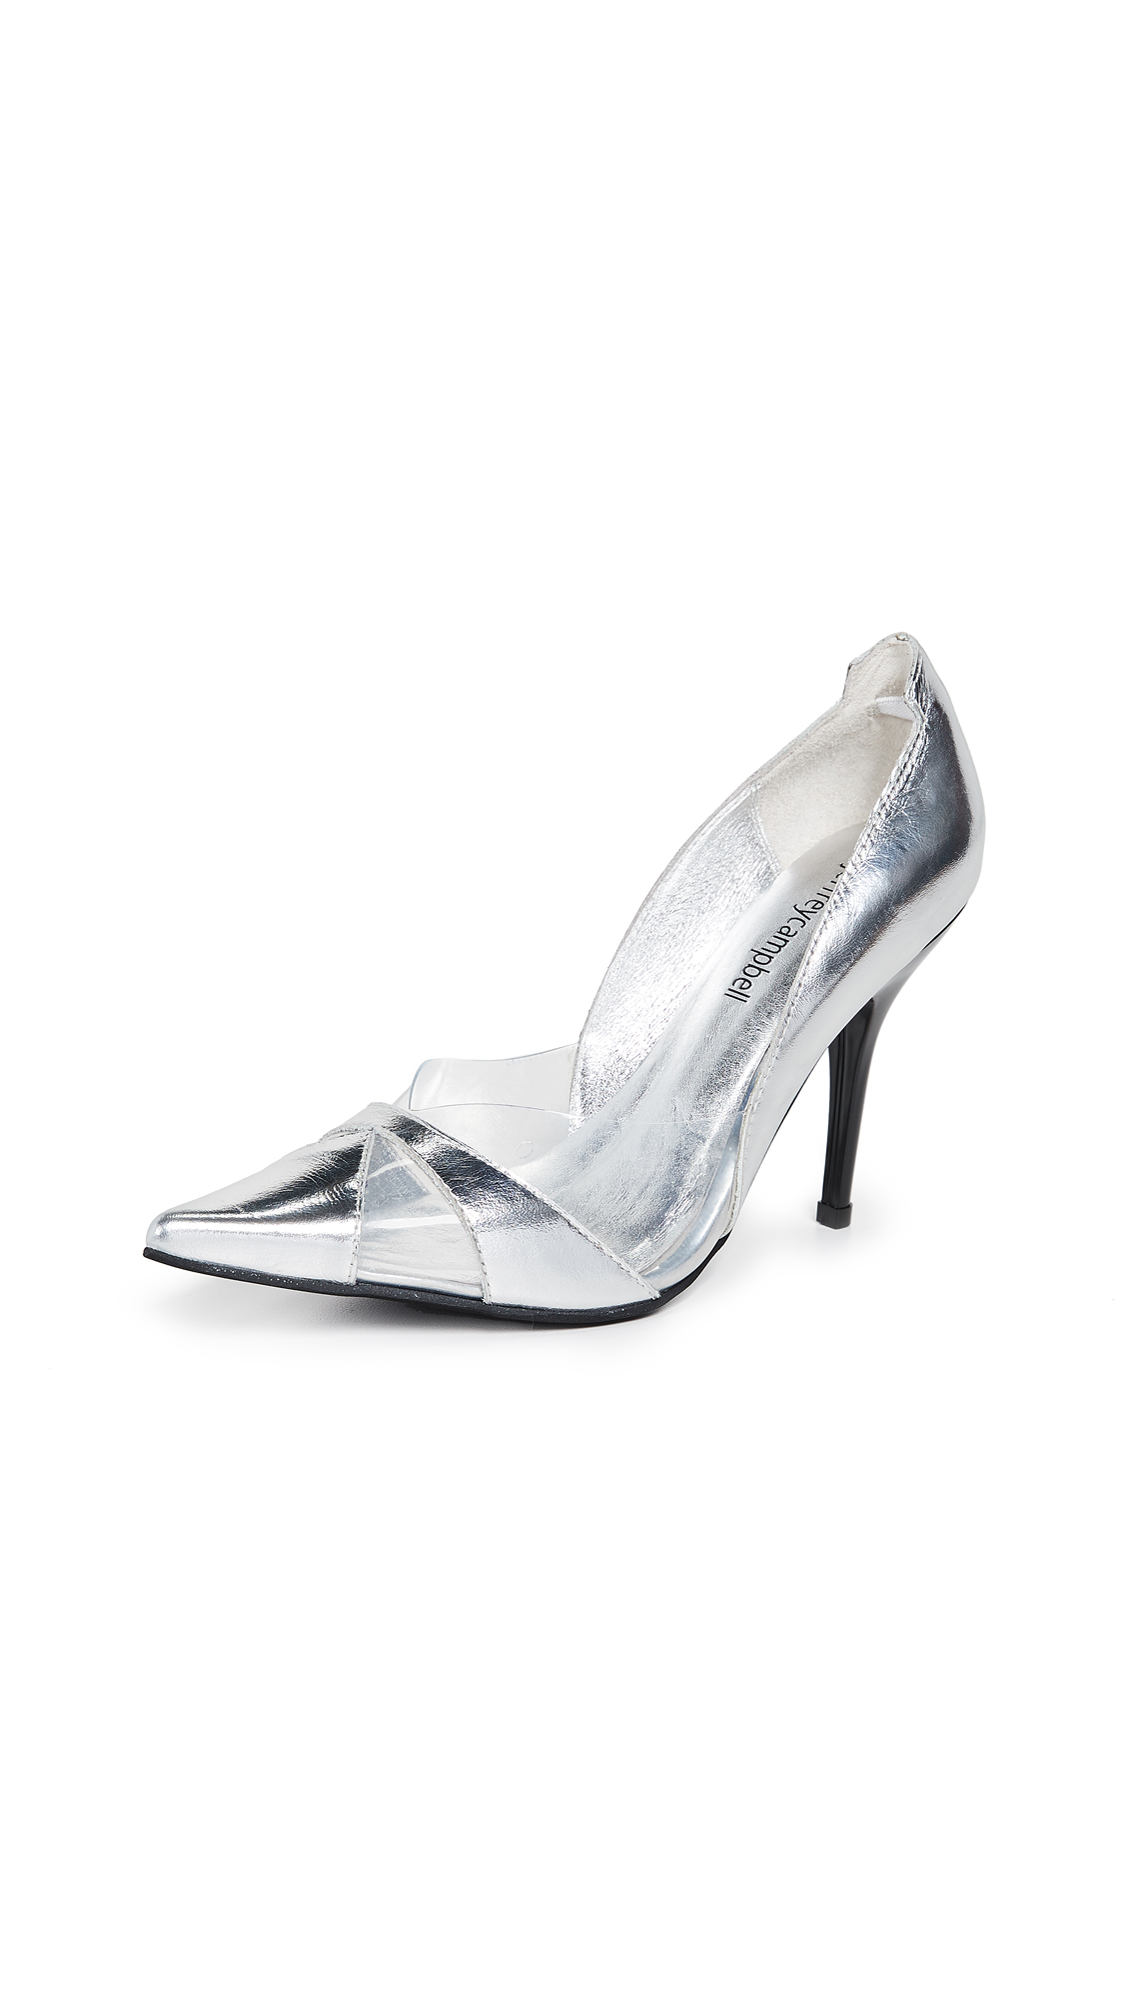 Jeffrey Campbell Luxury 2 Point Toe Pumps - Clear/Silver